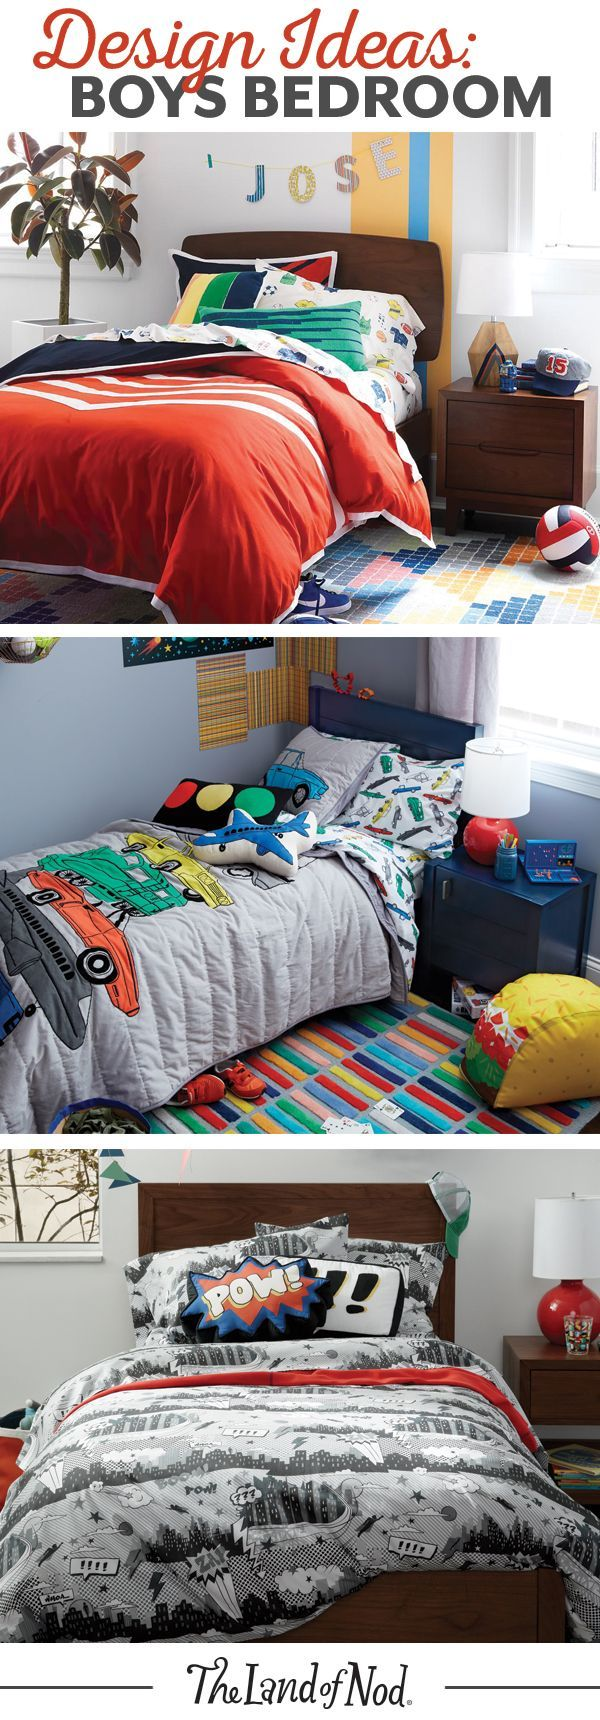 Searching For Boys Bedroom Ideas? The Land Of Nod Has Tons